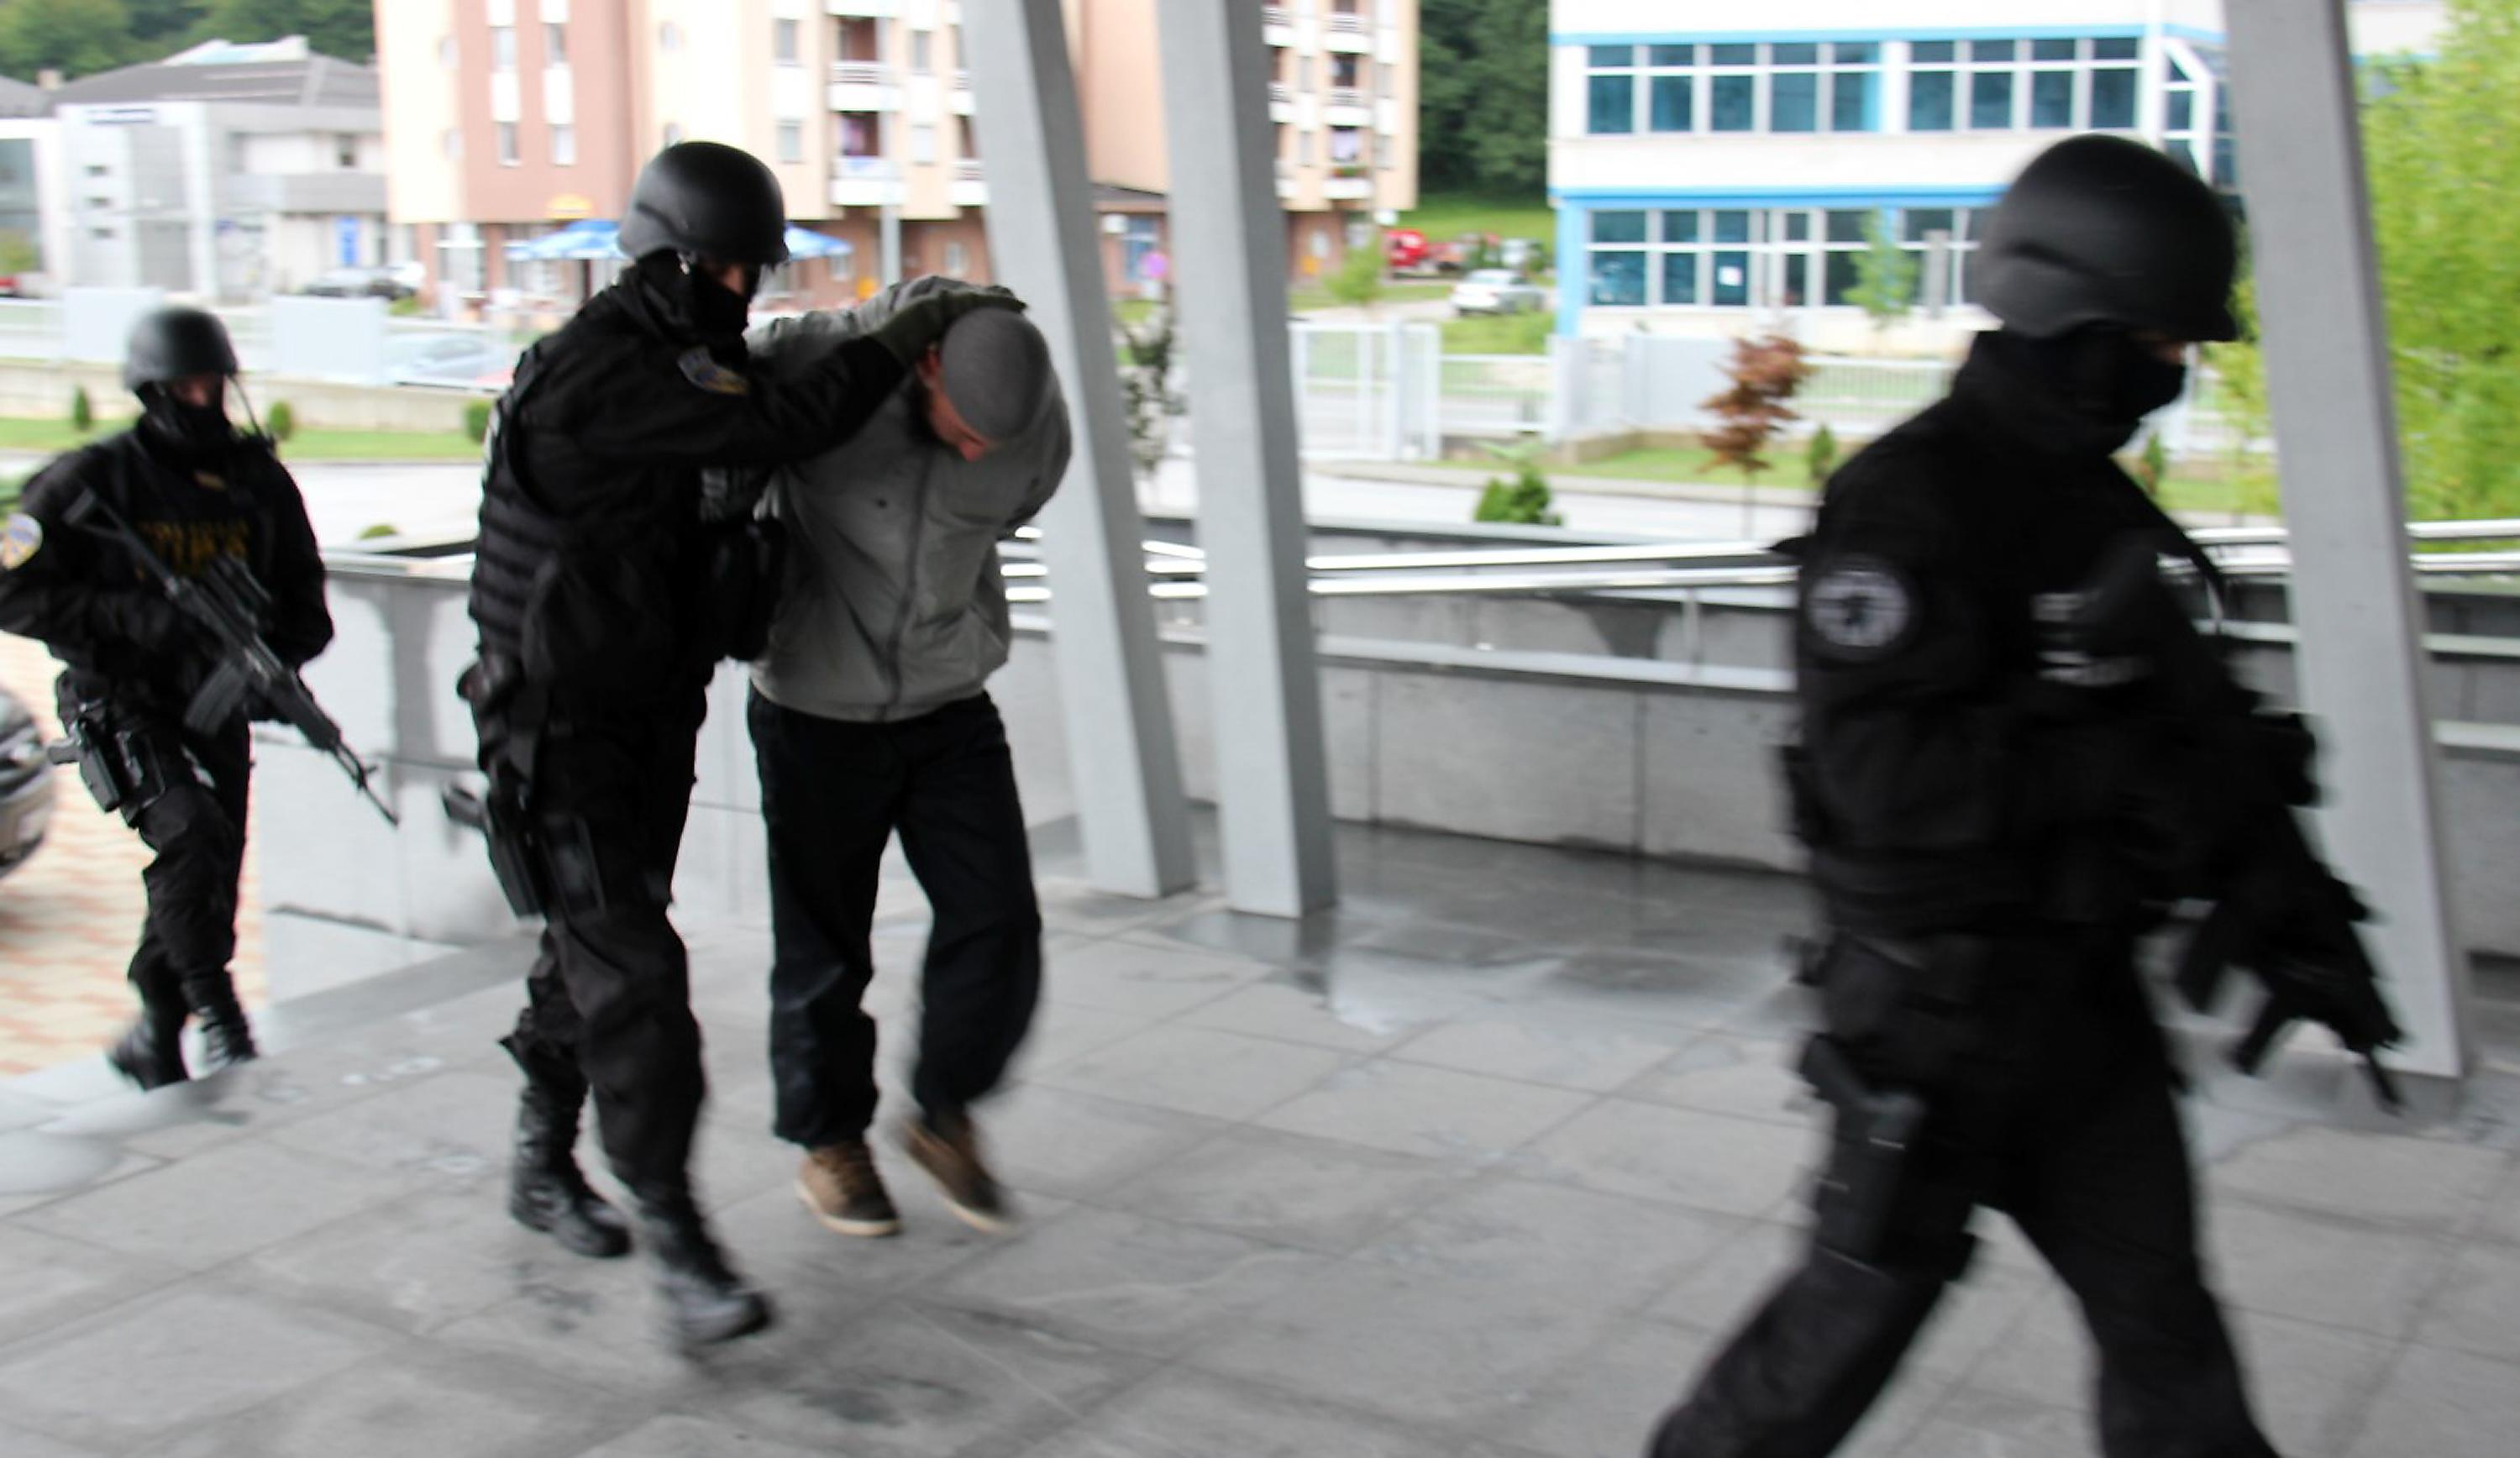 Bosnian police officers hold a man suspected of joining European-based Islamists and helping them travel to fight in Syria and Iraq, in Sarajevo, on September 3, 2014 (AFP Photo/)